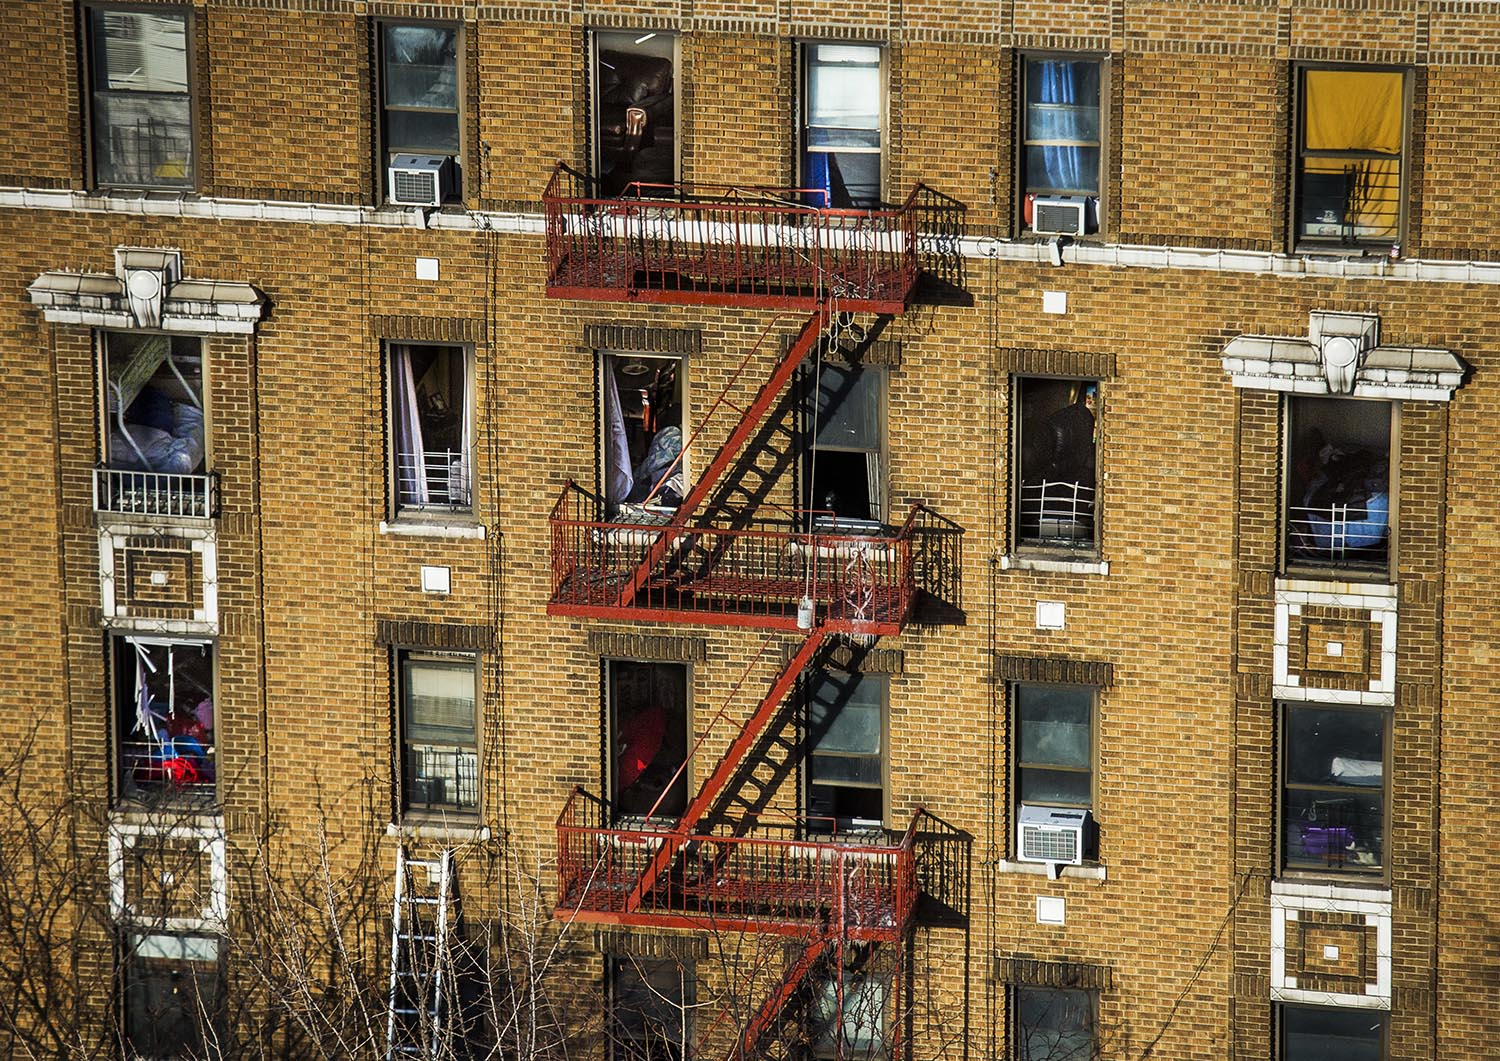 """<div class=""""meta image-caption""""><div class=""""origin-logo origin-image ap""""><span>AP</span></div><span class=""""caption-text"""">A firefighter ladder lay on the wall as furniture is seen through the broken windows of a building Friday, Dec. 29, 2017. (AP Photo/Andres Kudacki)</span></div>"""